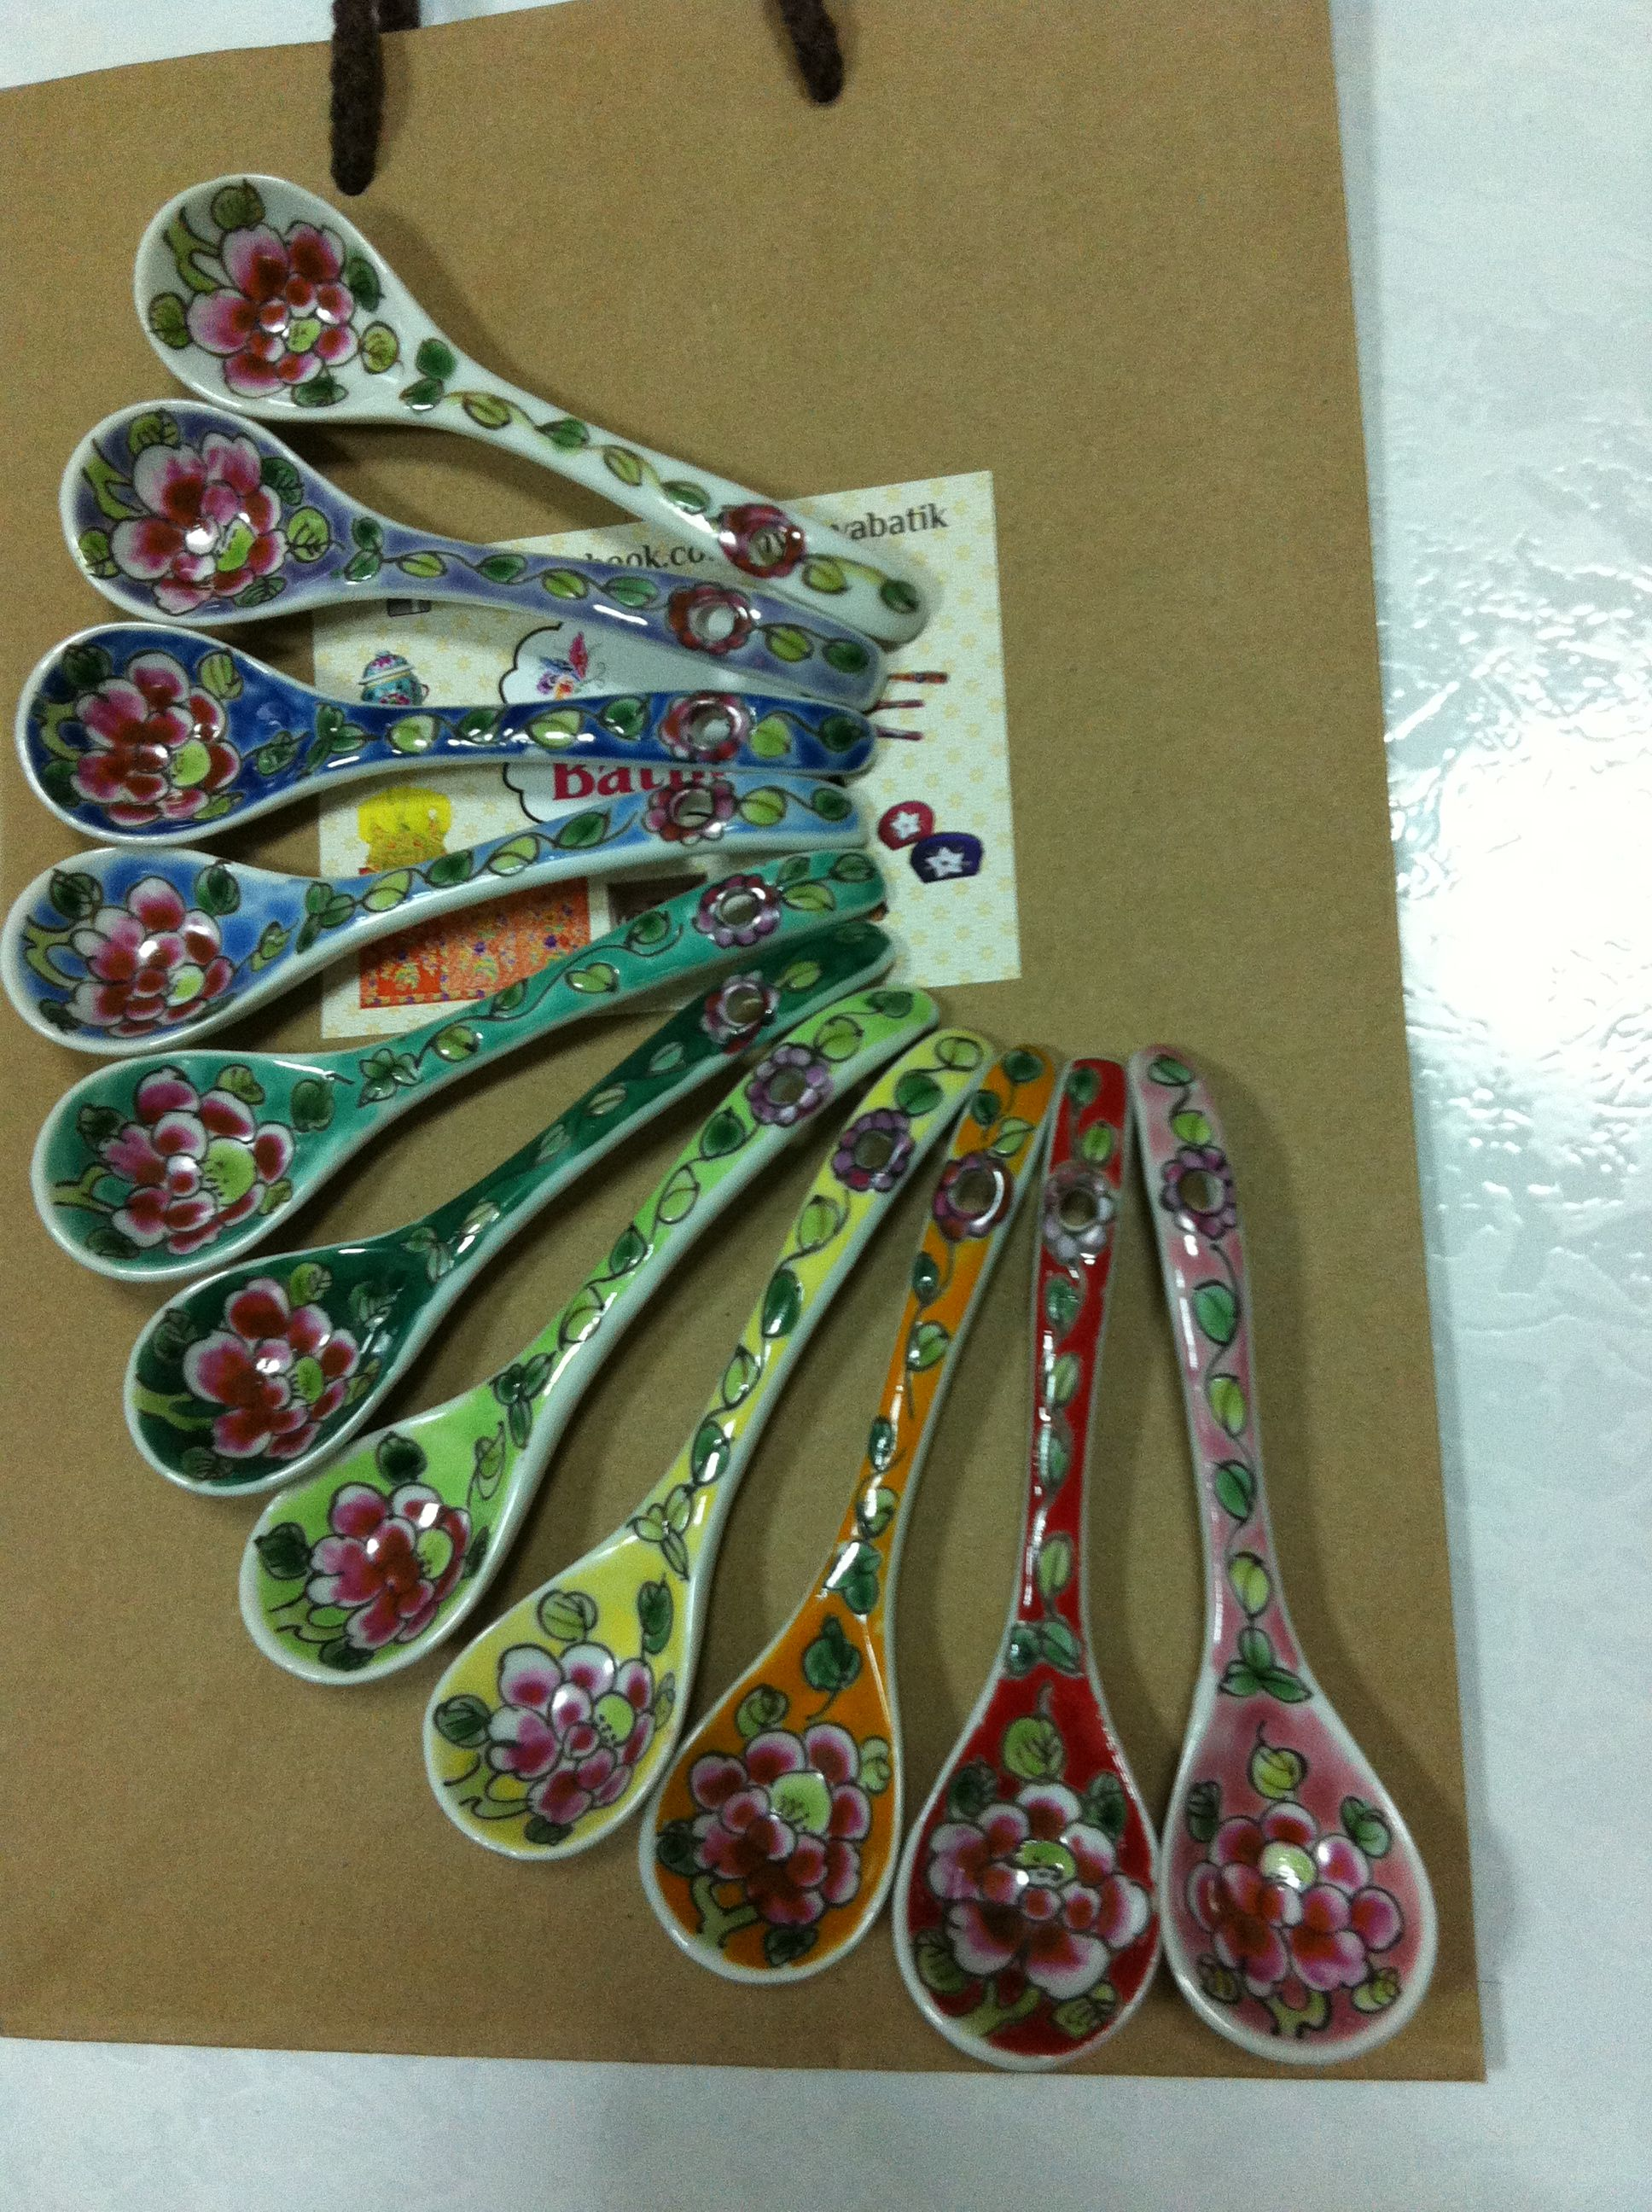 Peranakan Spoon Complete Colour Peranakan Pinterest 中 And 素材